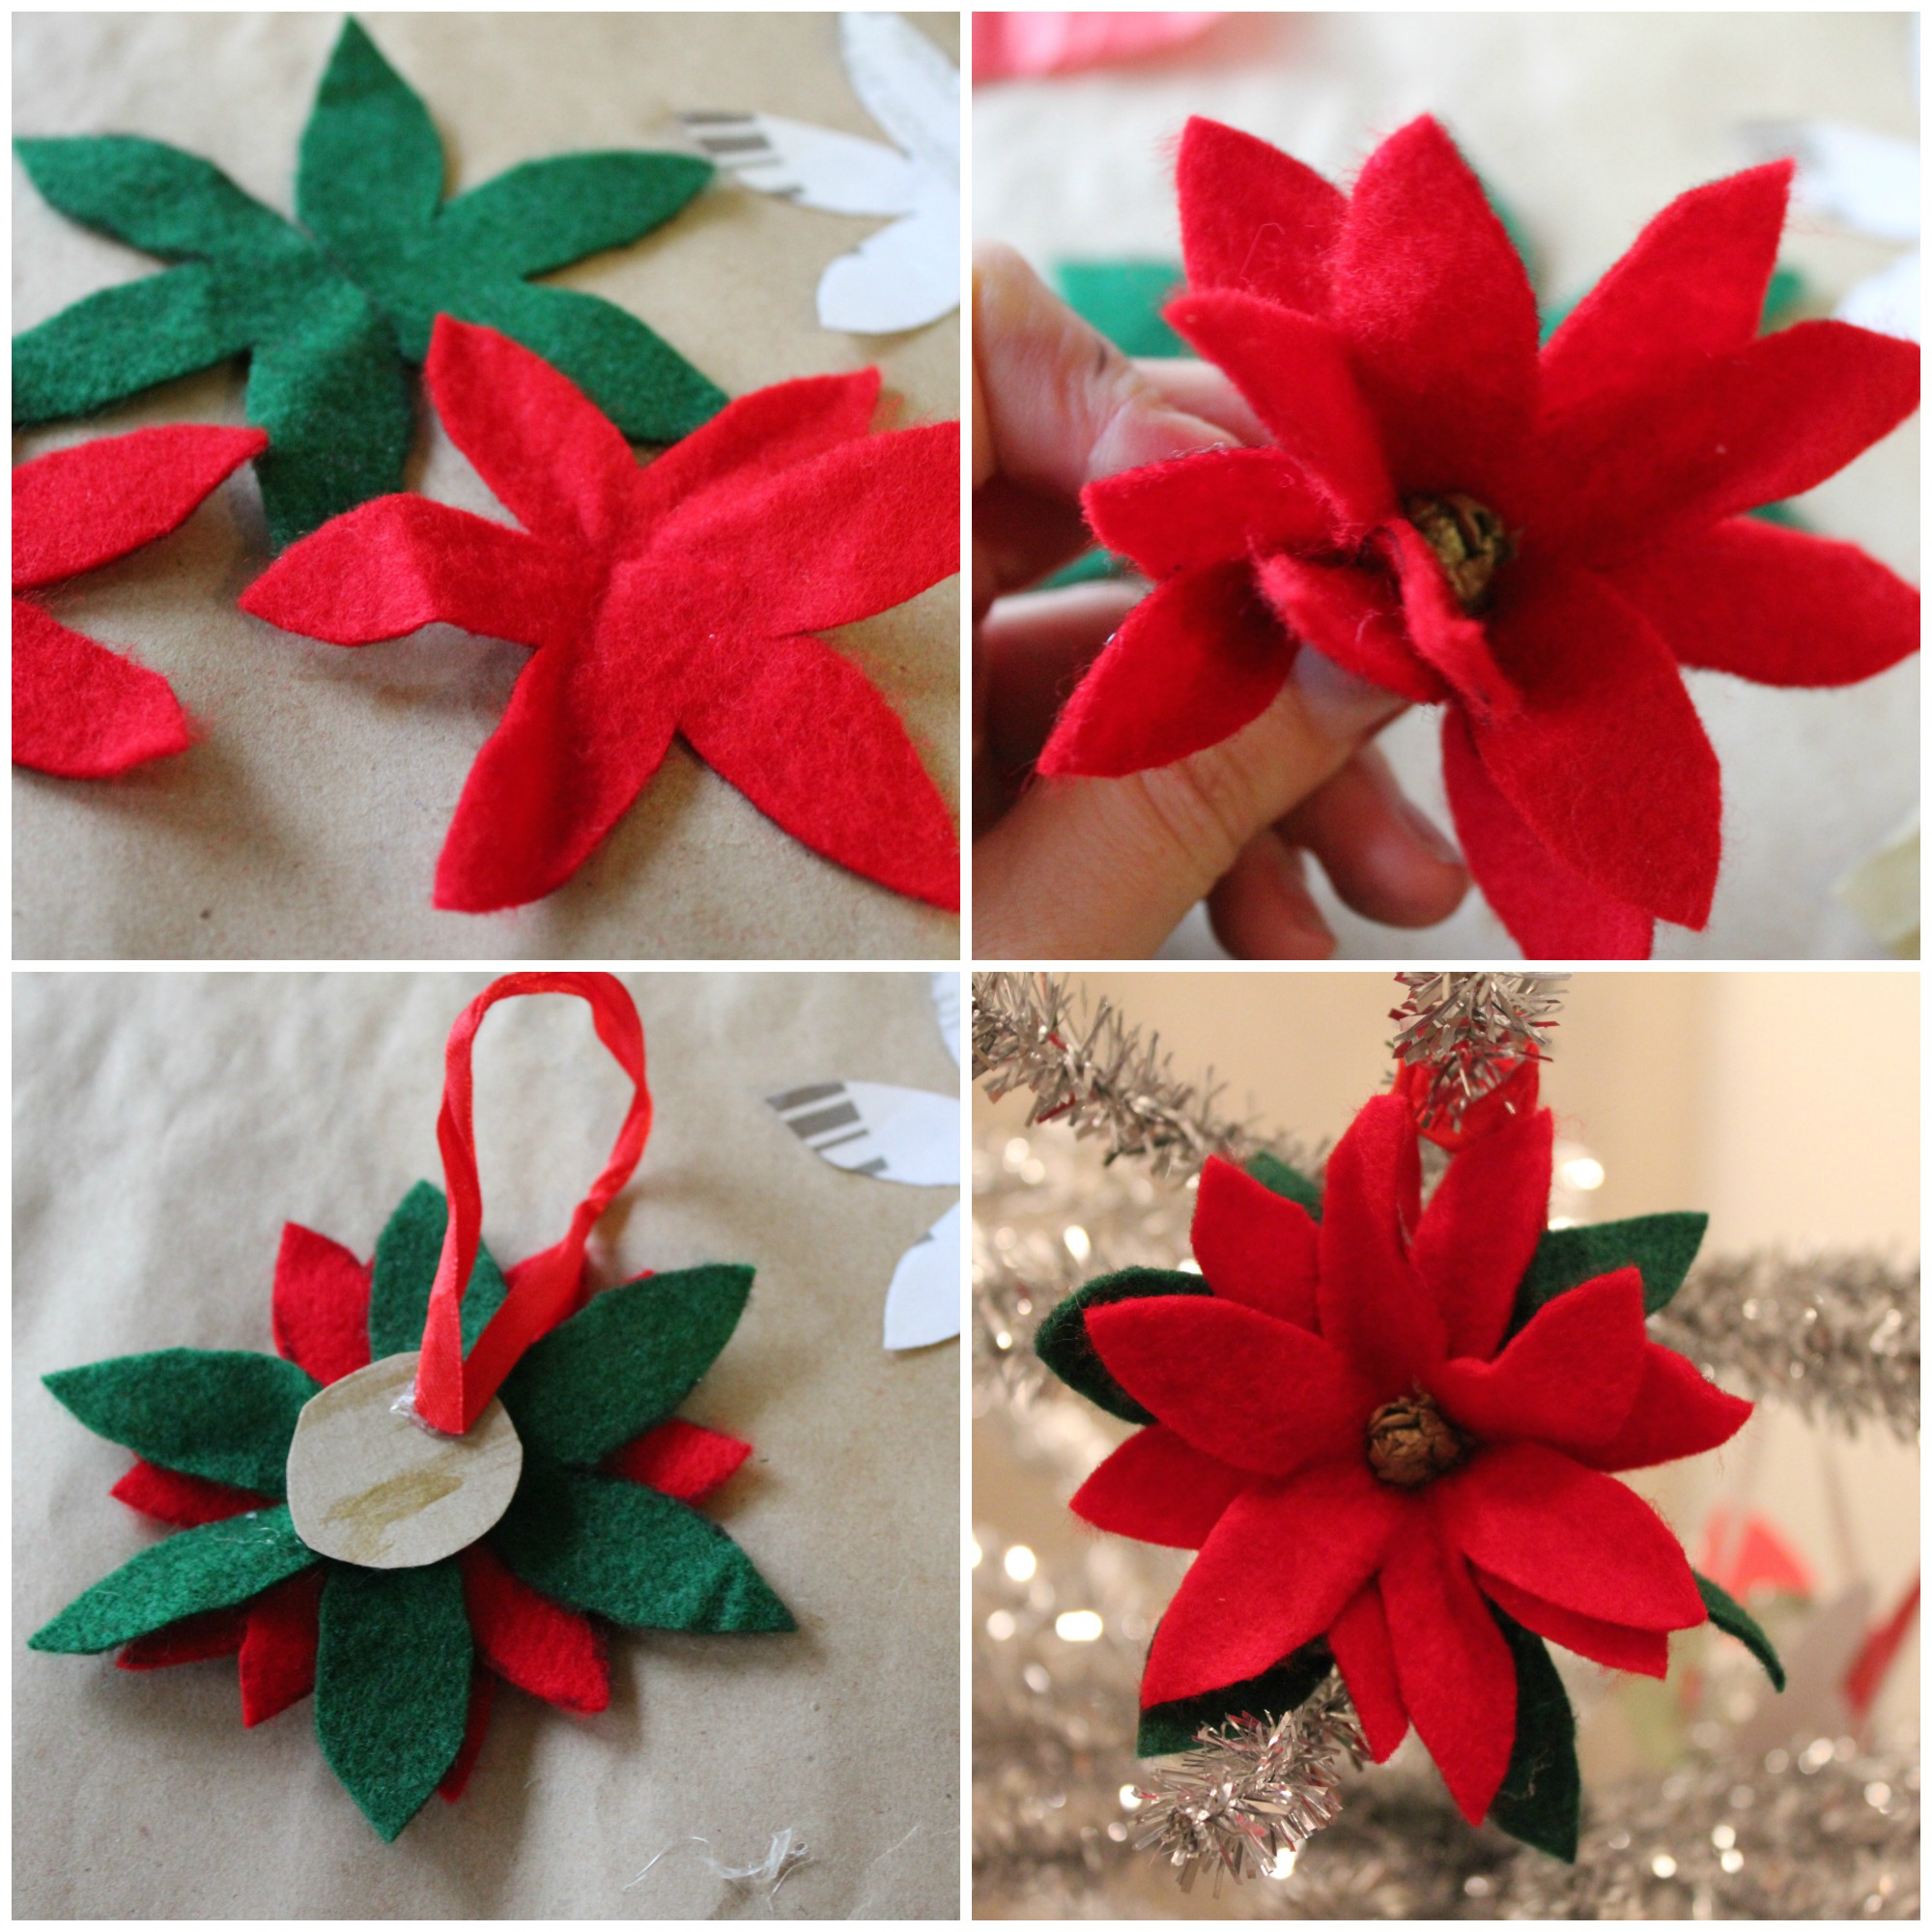 poinsetta ornament collage to make - Paper Christmas Decorations To Make At Home